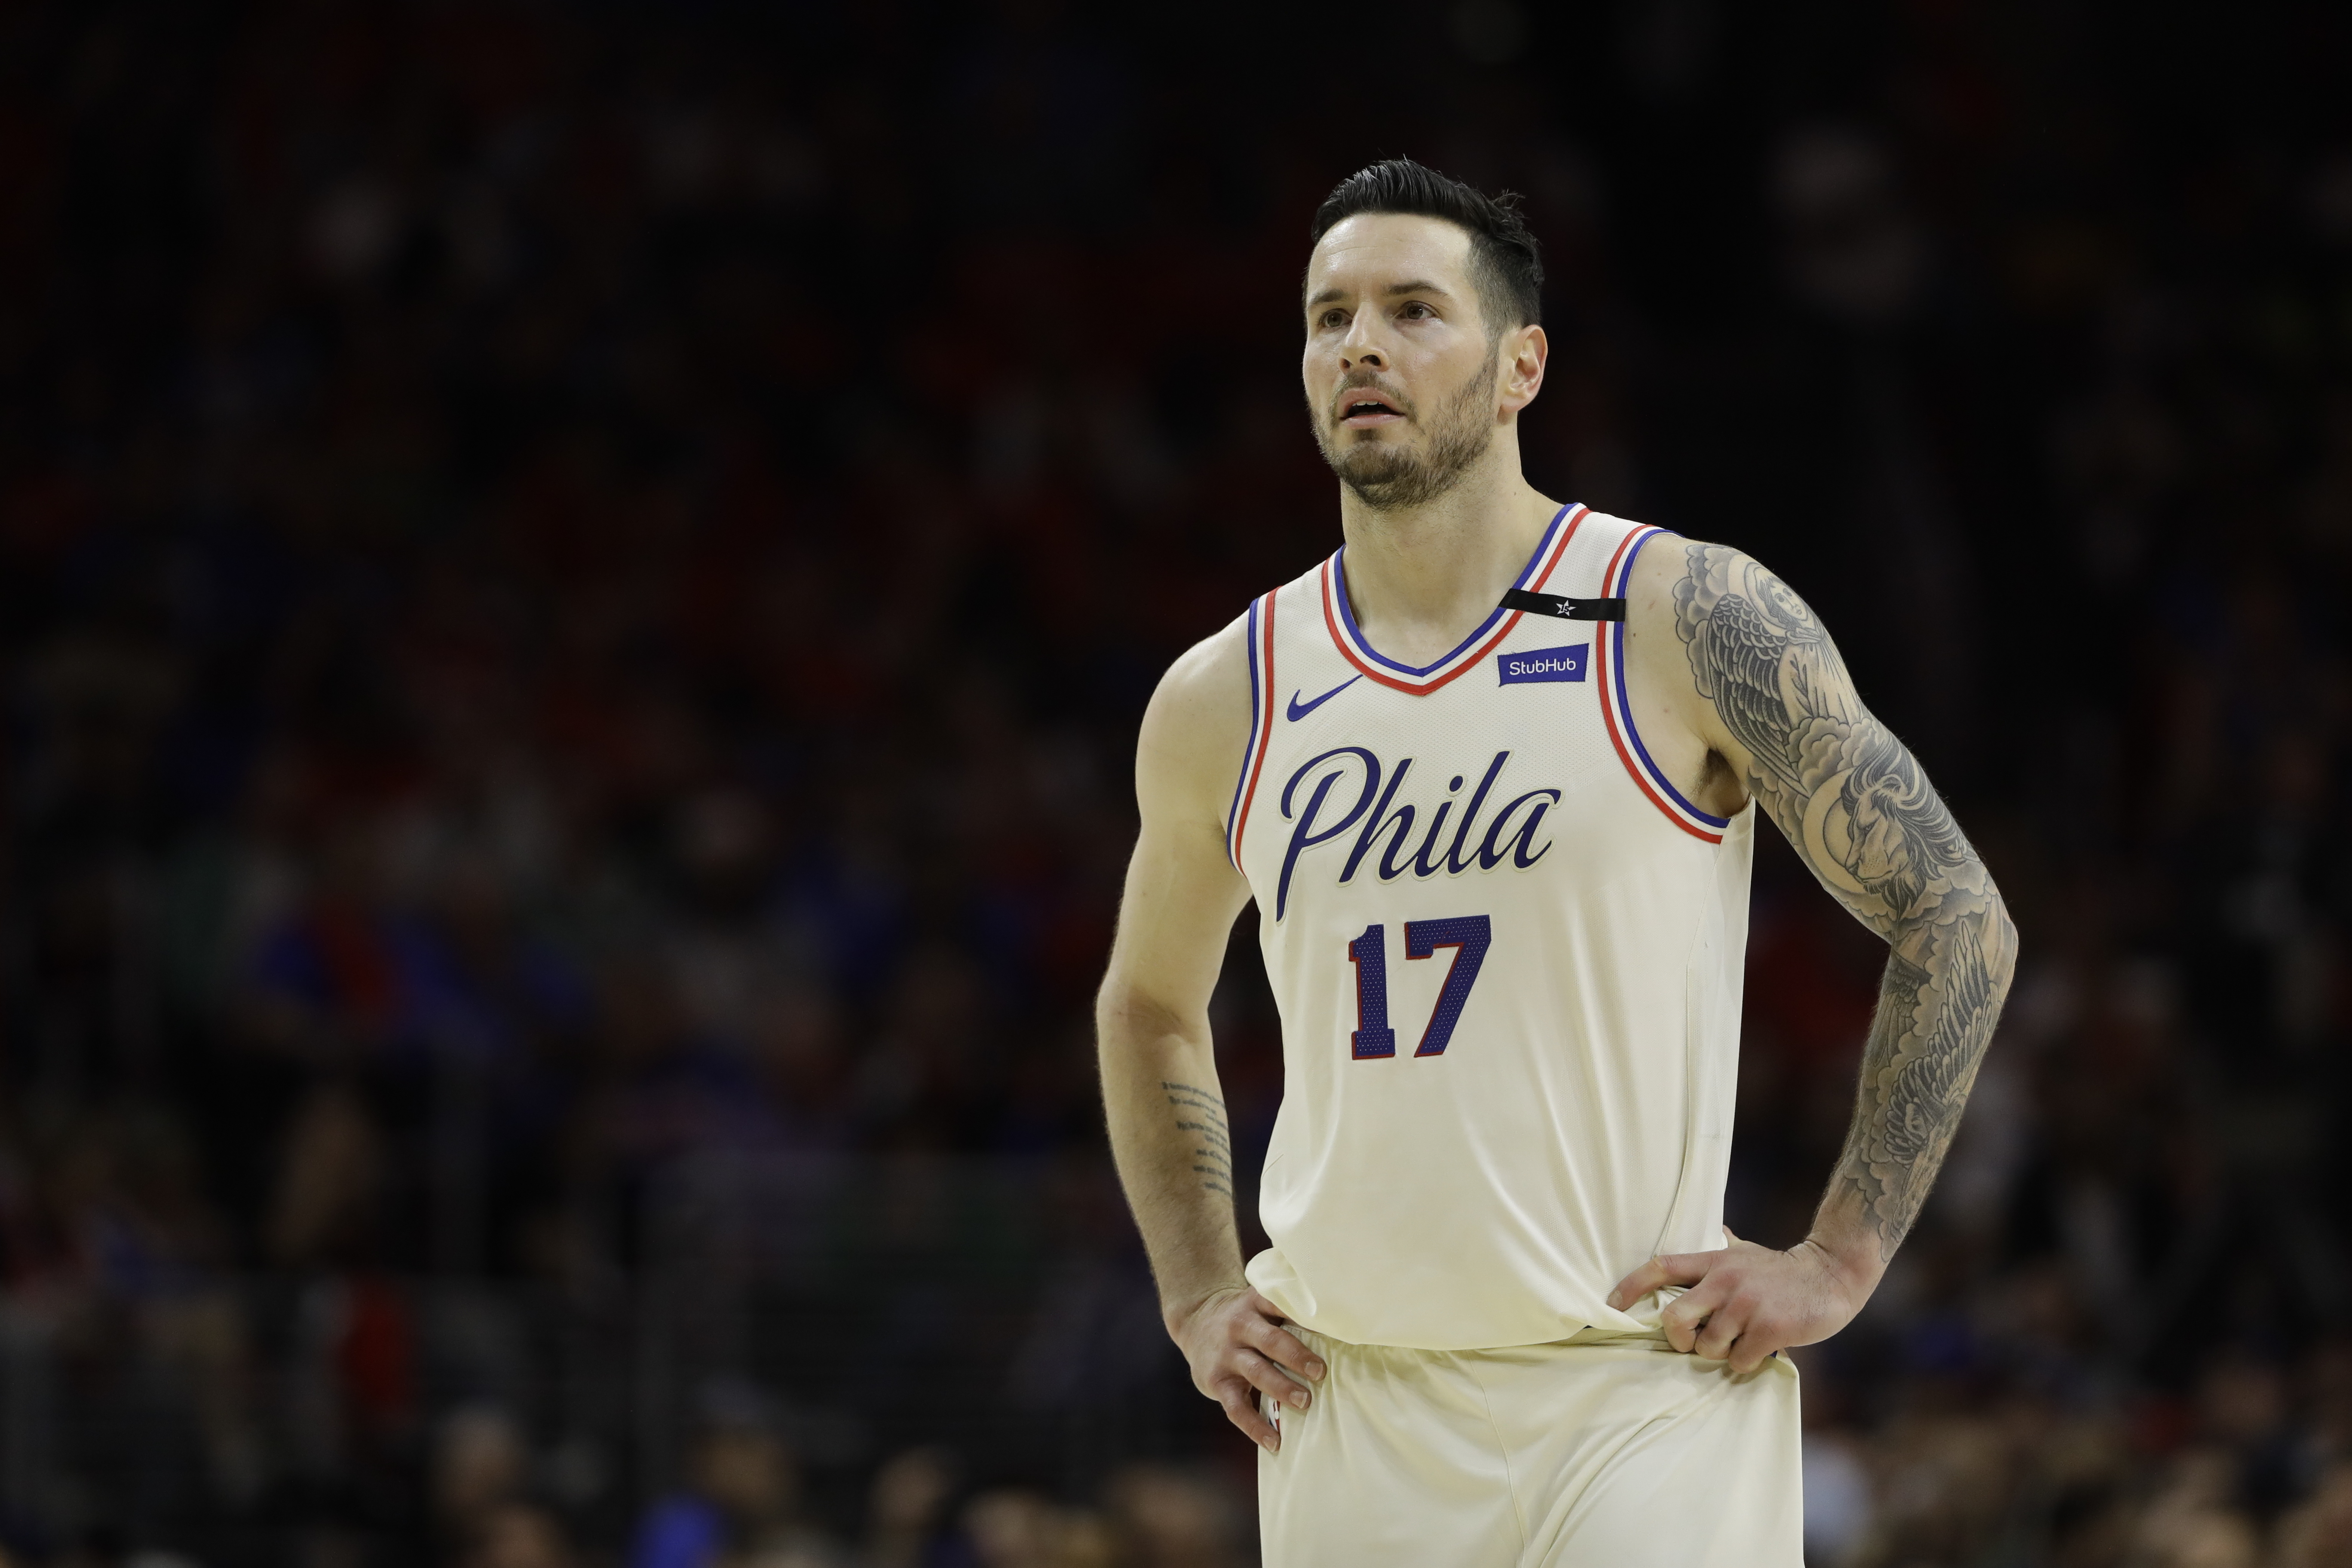 Depending on how things shake out, JJ Redick would make sense for the Sixers to retain next season.